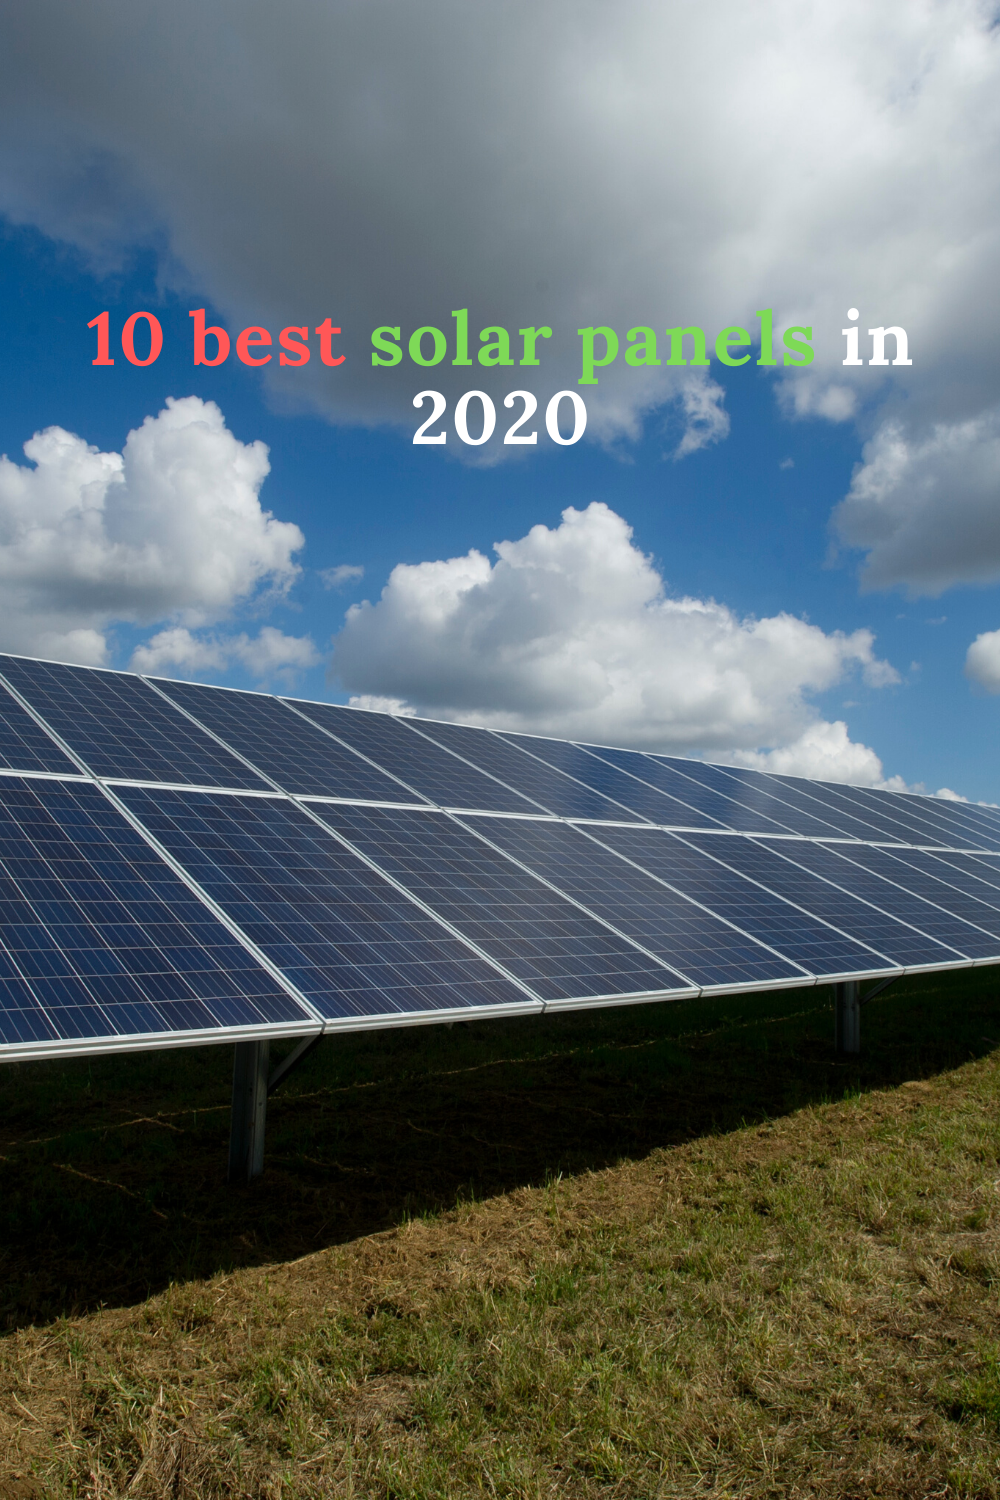 10 Best Solar Panels In 2020 In 2020 Solar Panels Best Solar Panels Solar